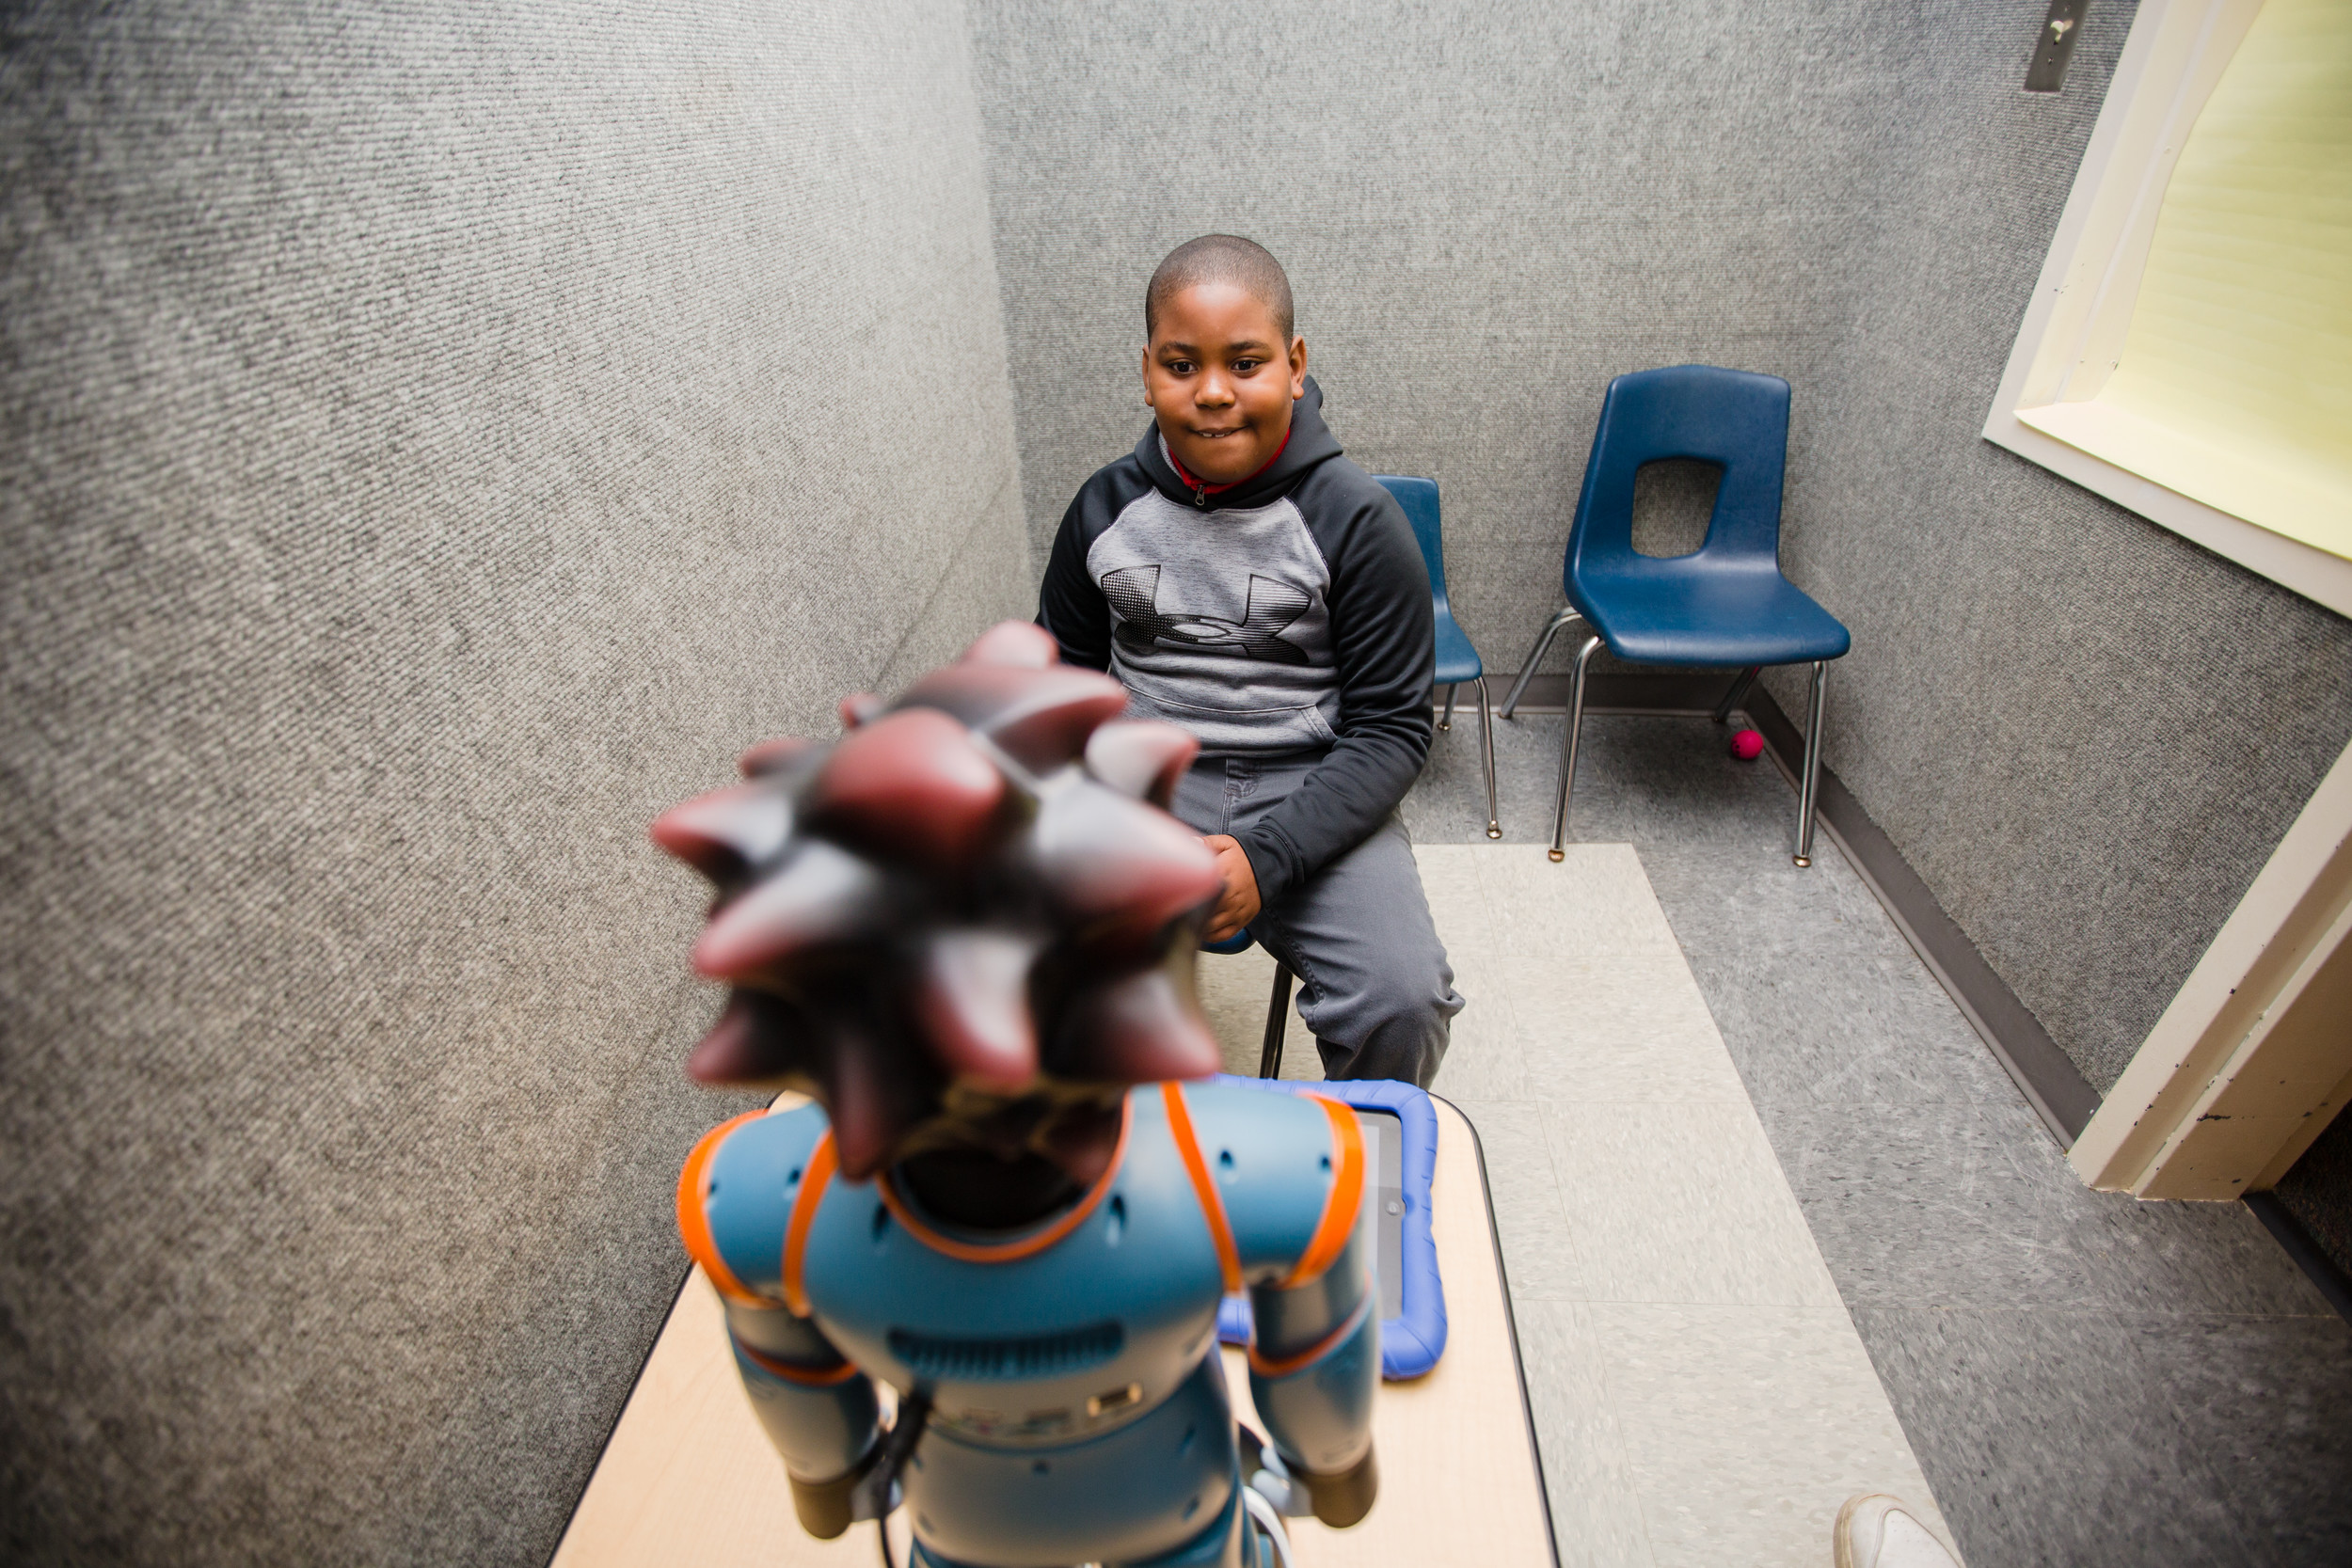 Devon Lester, 9, interacts with Milo in an isolation room at Kingsbury Elementary.